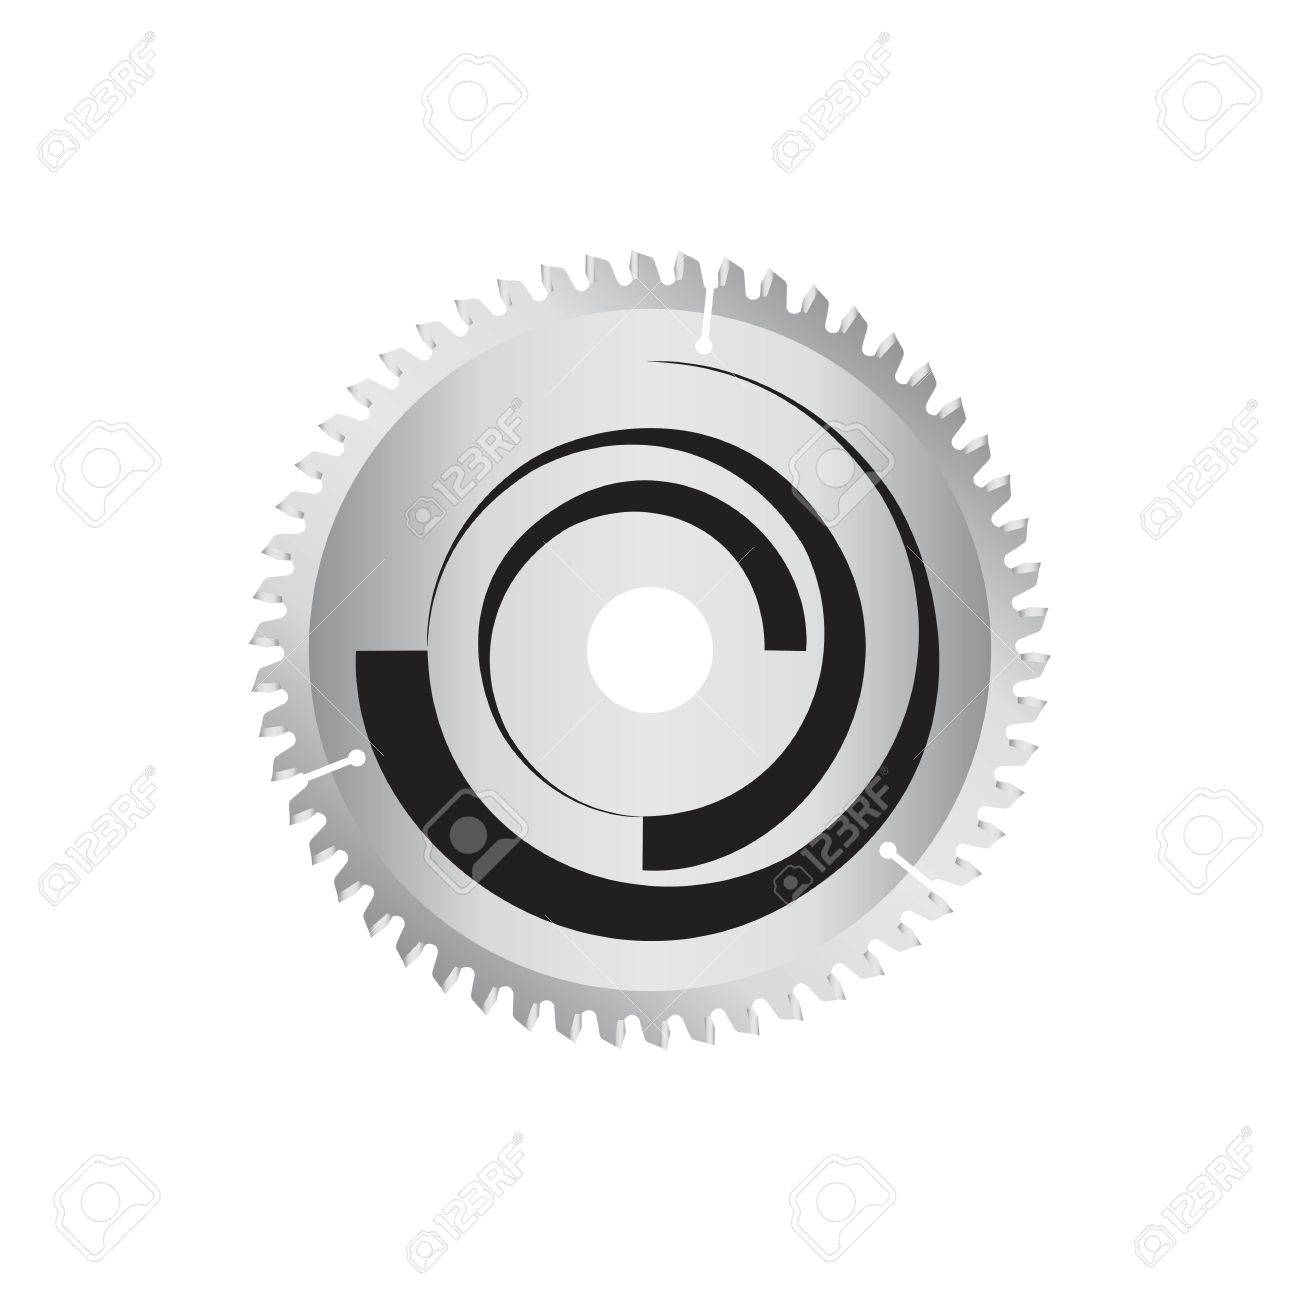 Circular saw disk object is isolated royalty free cliparts vectors circular saw disk object is isolated stock vector 68099773 buycottarizona Choice Image